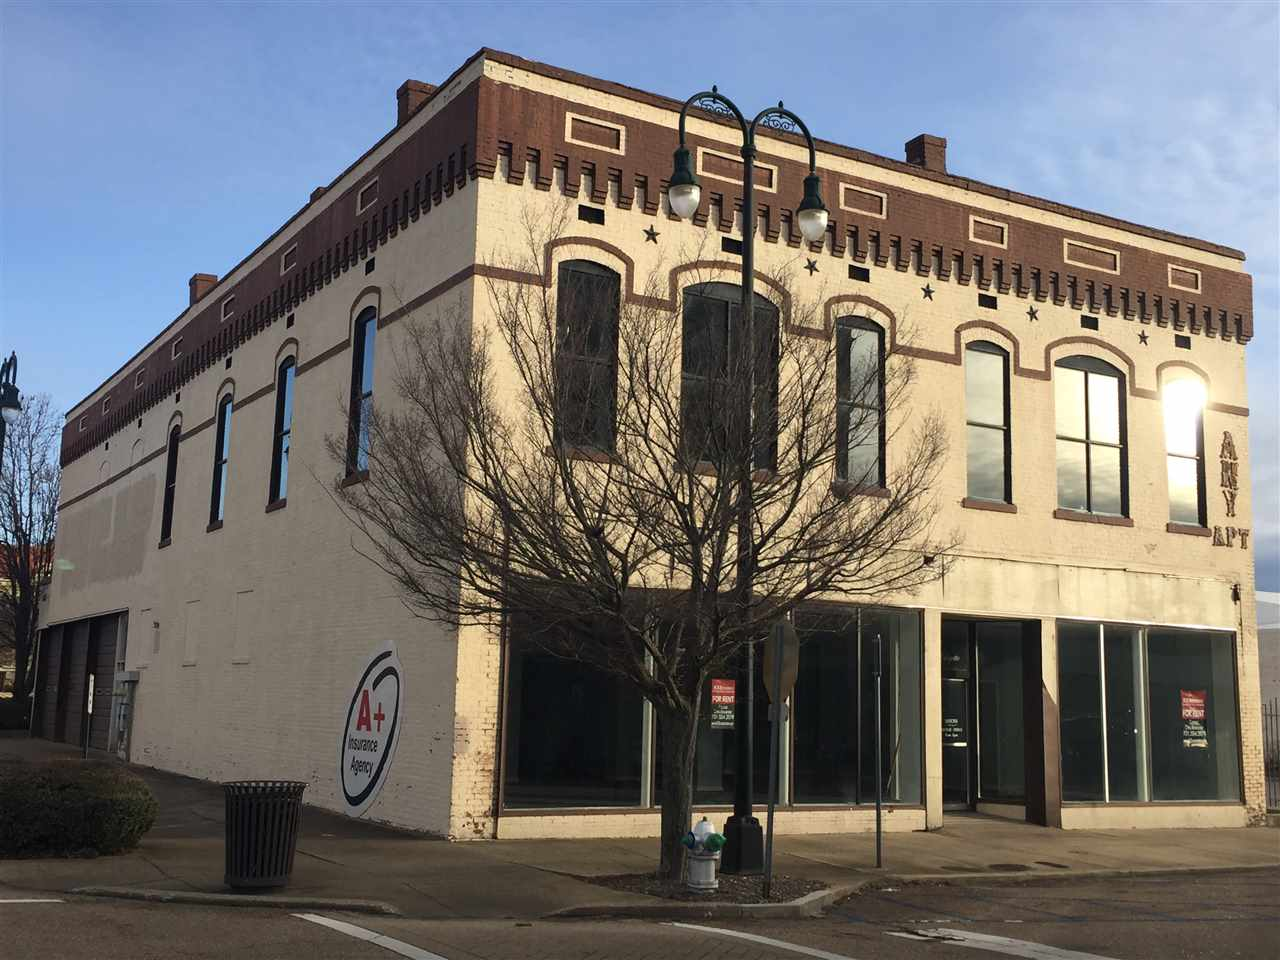 301 E Lafayette Street, Jackson, Tennessee 38301, ,Commercial/industrial,For Rent,301 E Lafayette Street,189986